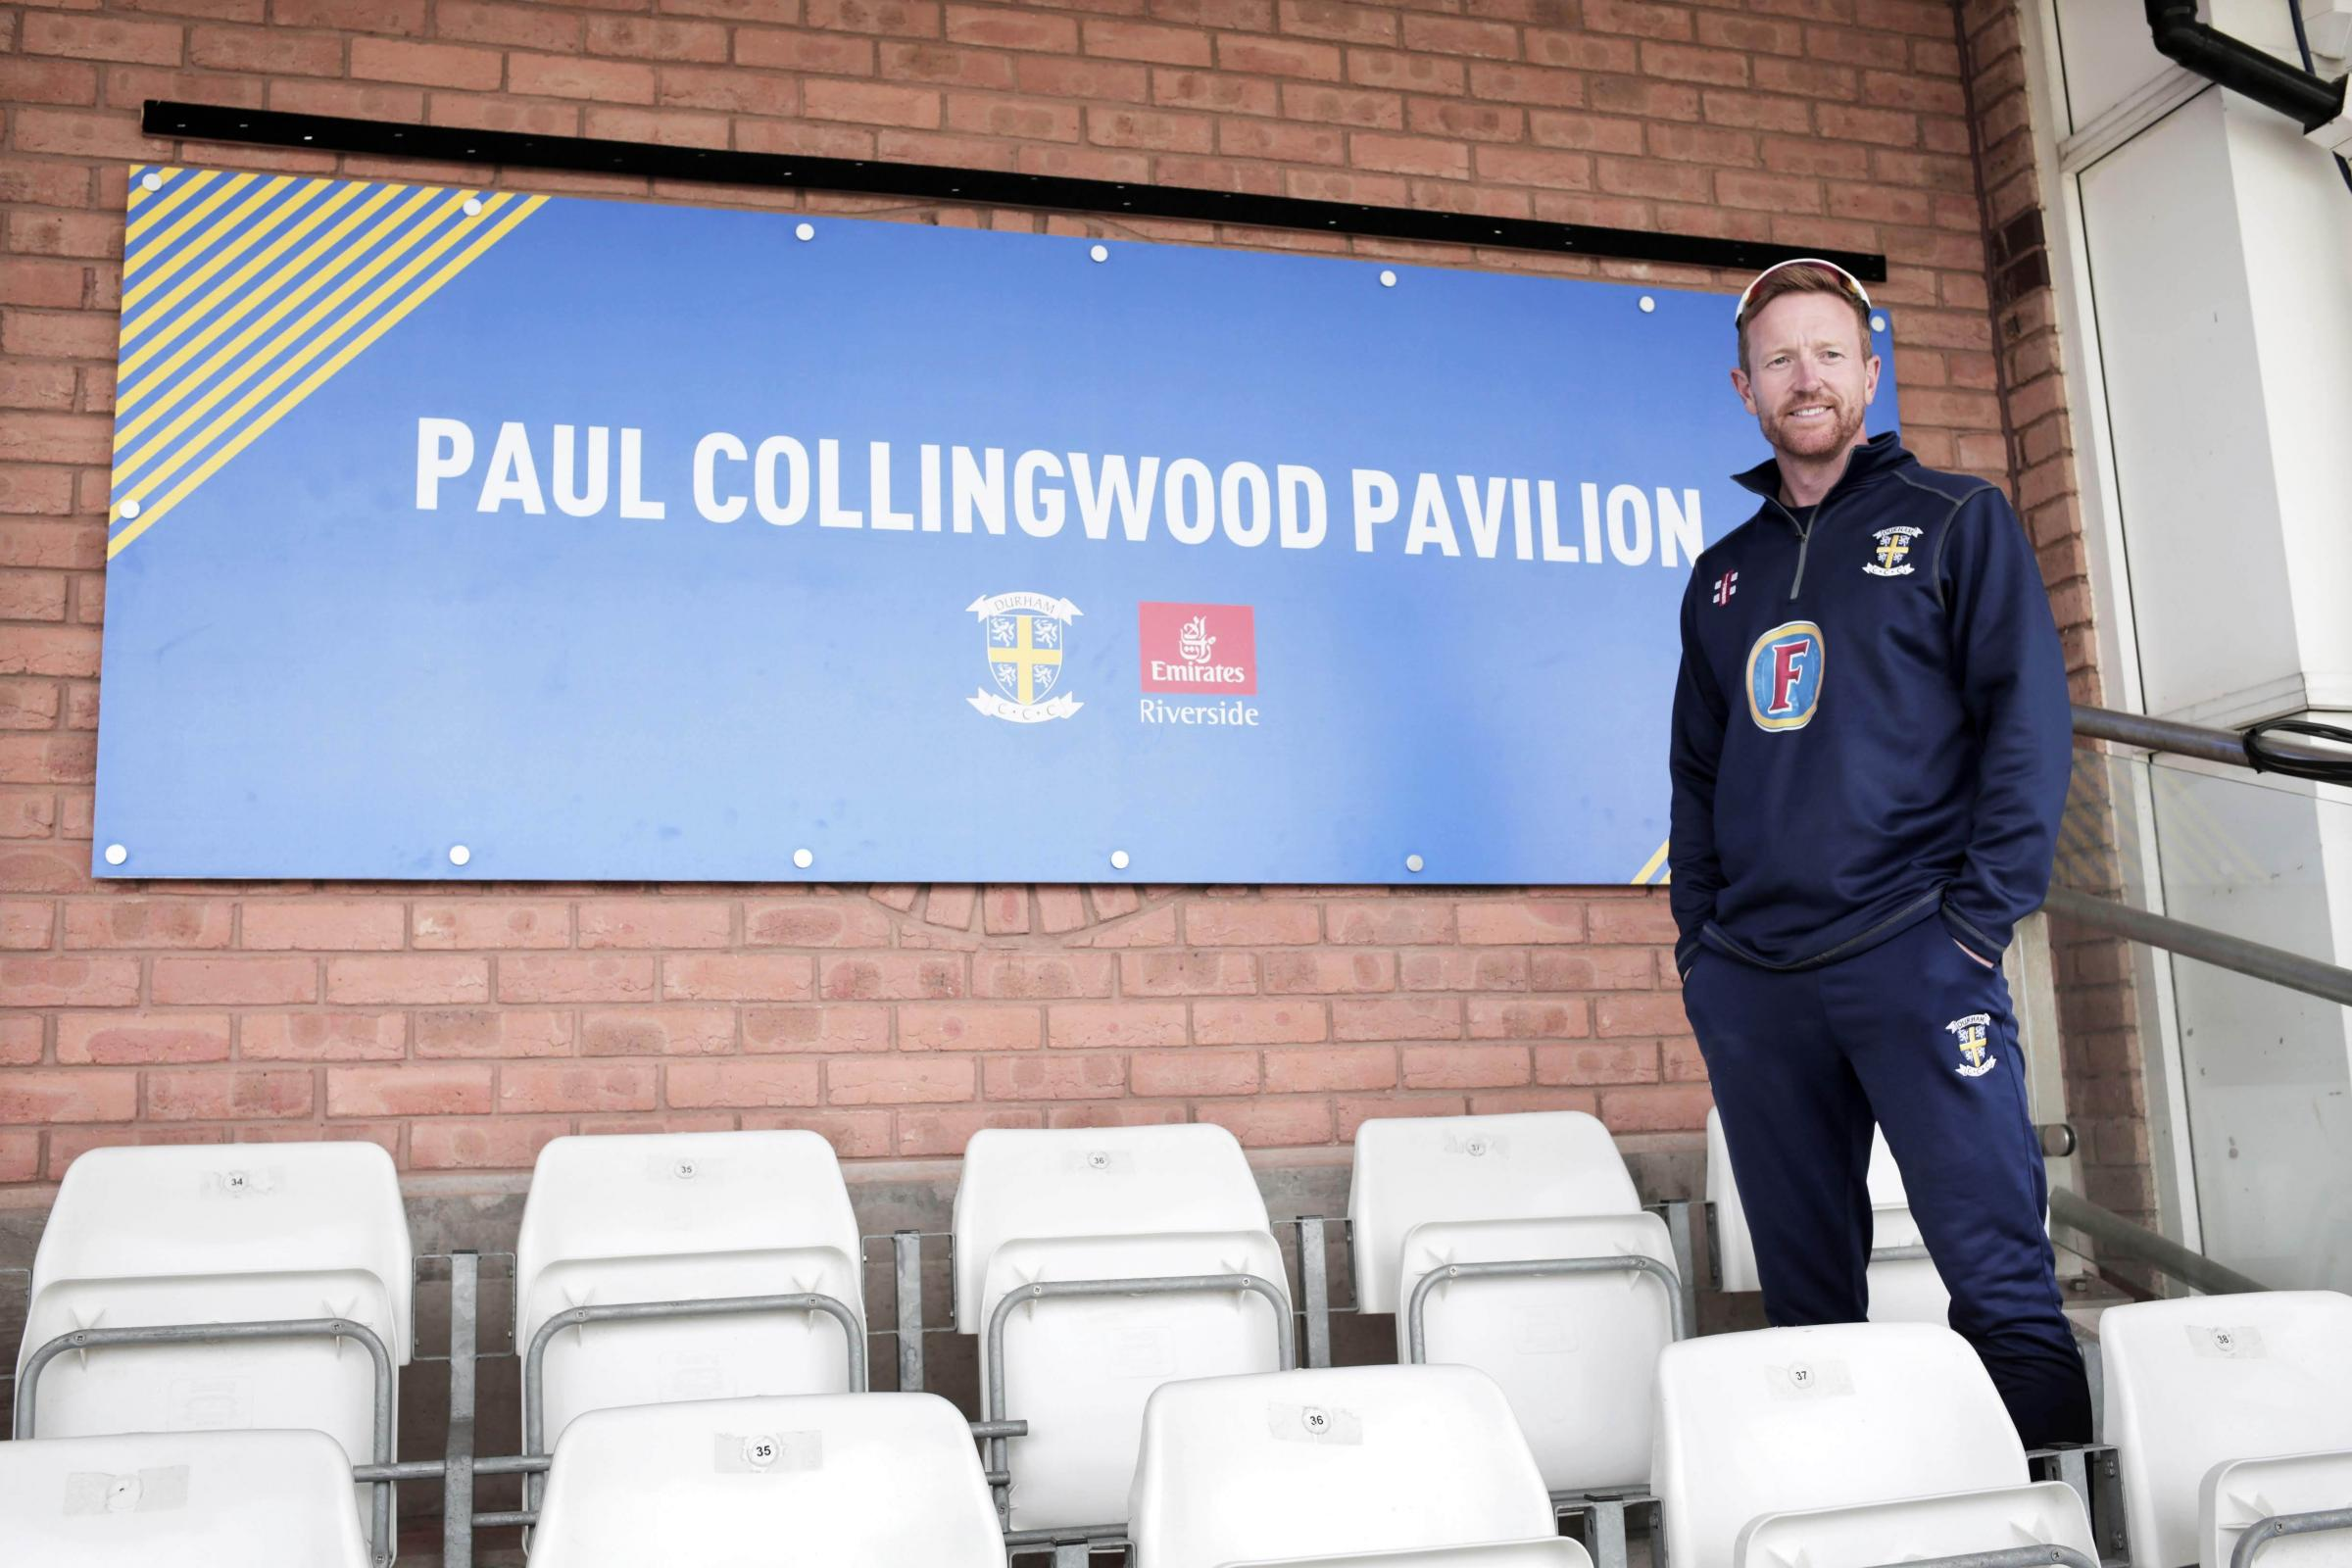 Paul Collingwood unveils the new Paul Collingwood Pavilion at the Emirates Riverside in Chester le Street. Photograph by Stuart Boulton..